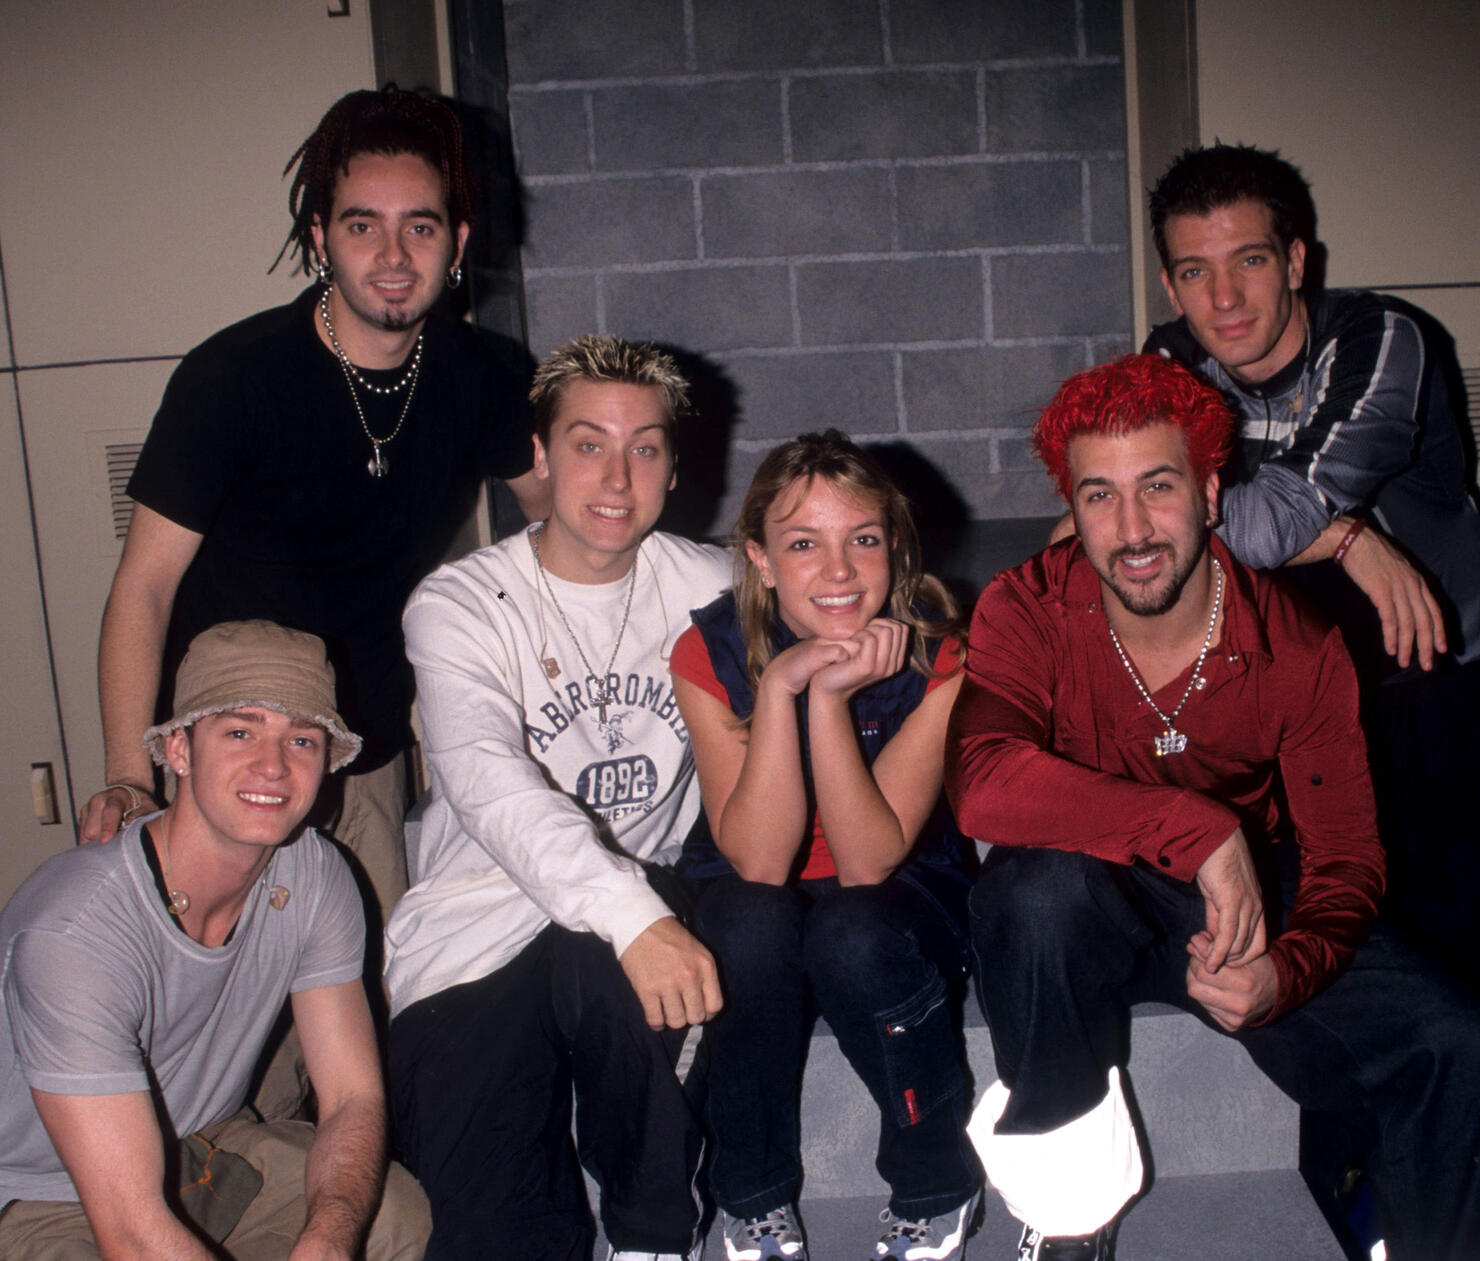 The 1999 MTV Video Music Awards - Rehearsals